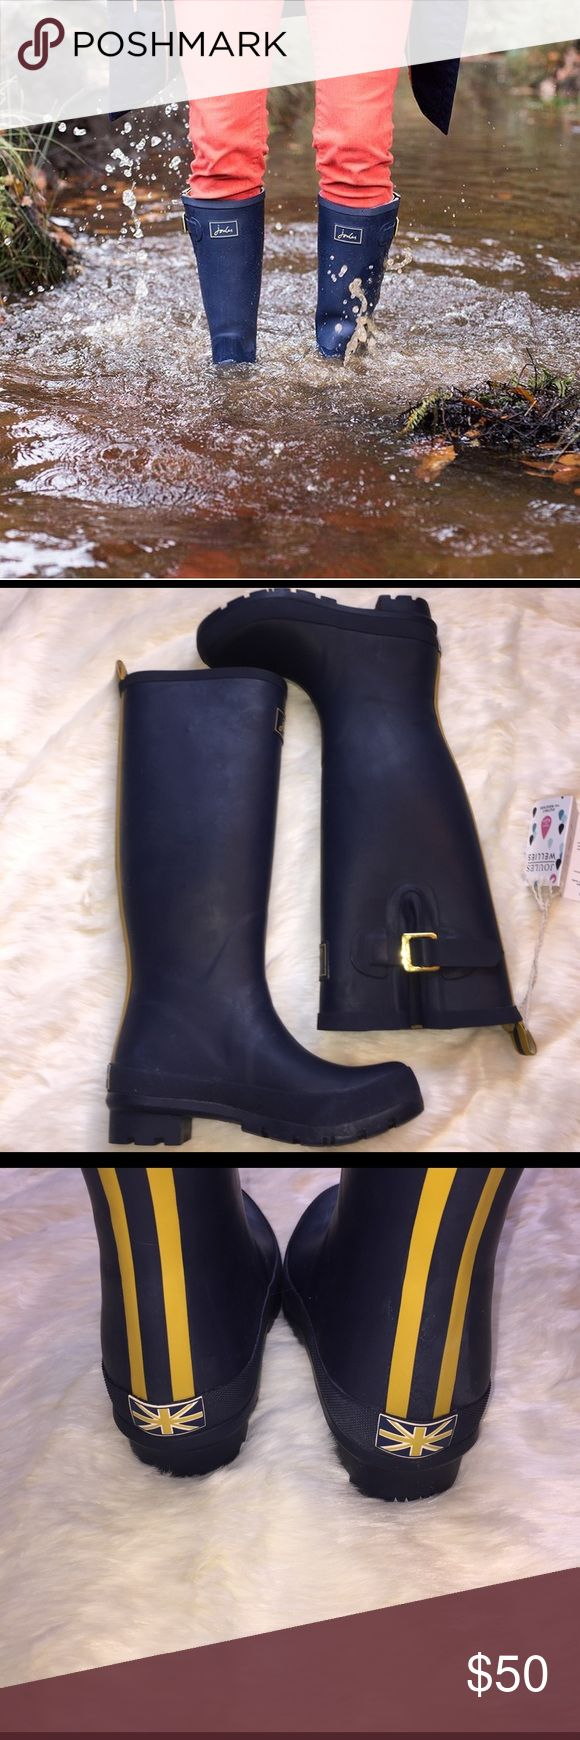 Joules Wellies Rain Boots NWT boots. Cute yellow stripes down the back. These boots are prefect for this spring and are covered by a 1 year manufacture warranty! Joules Shoes Winter & Rain Boots